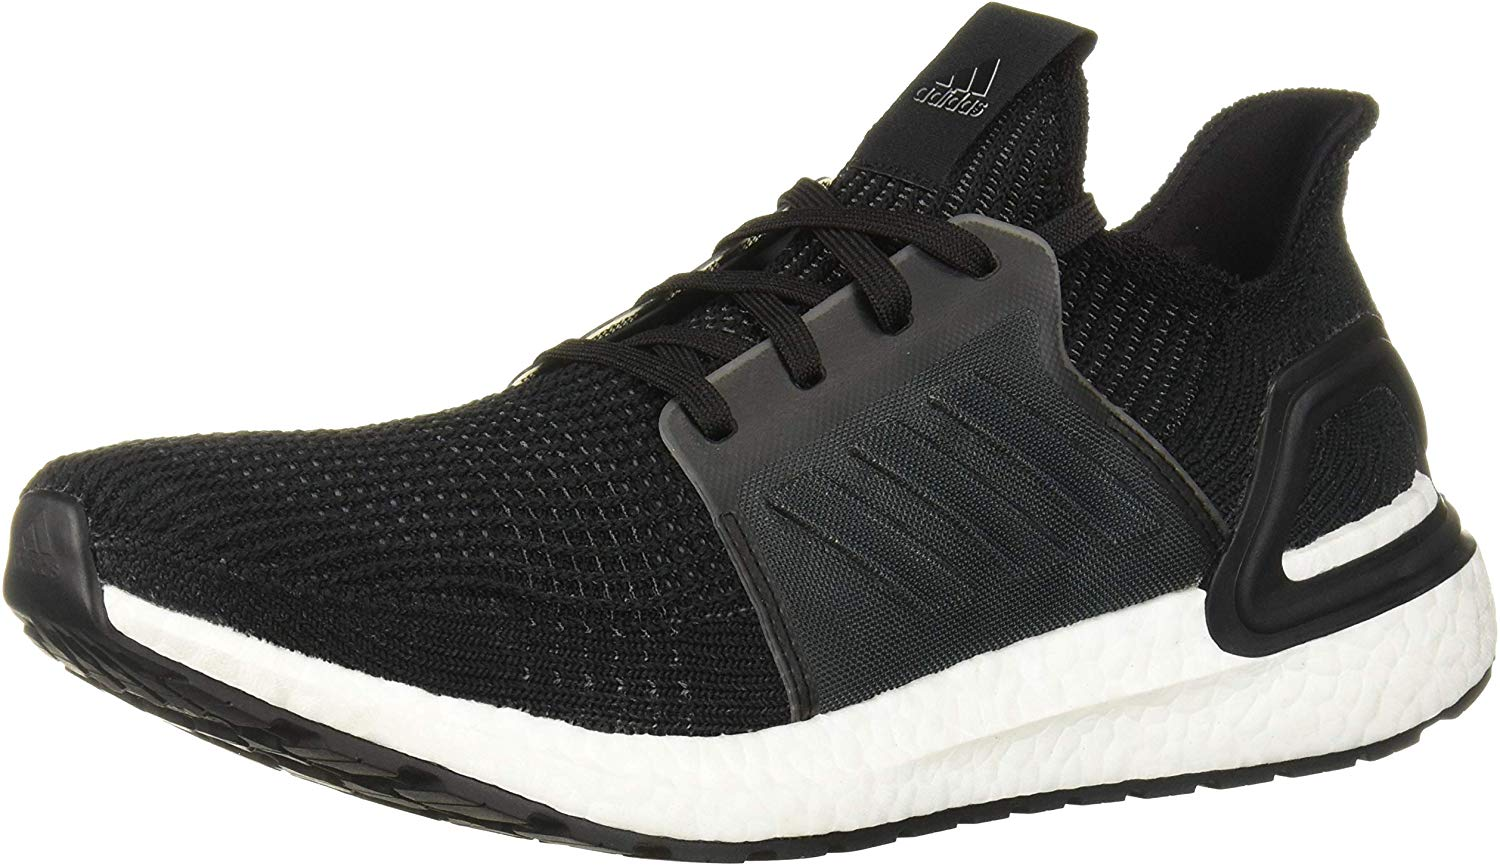 adidas Mens Ultraboost 19 Running Shoe - Black/White - Size 12